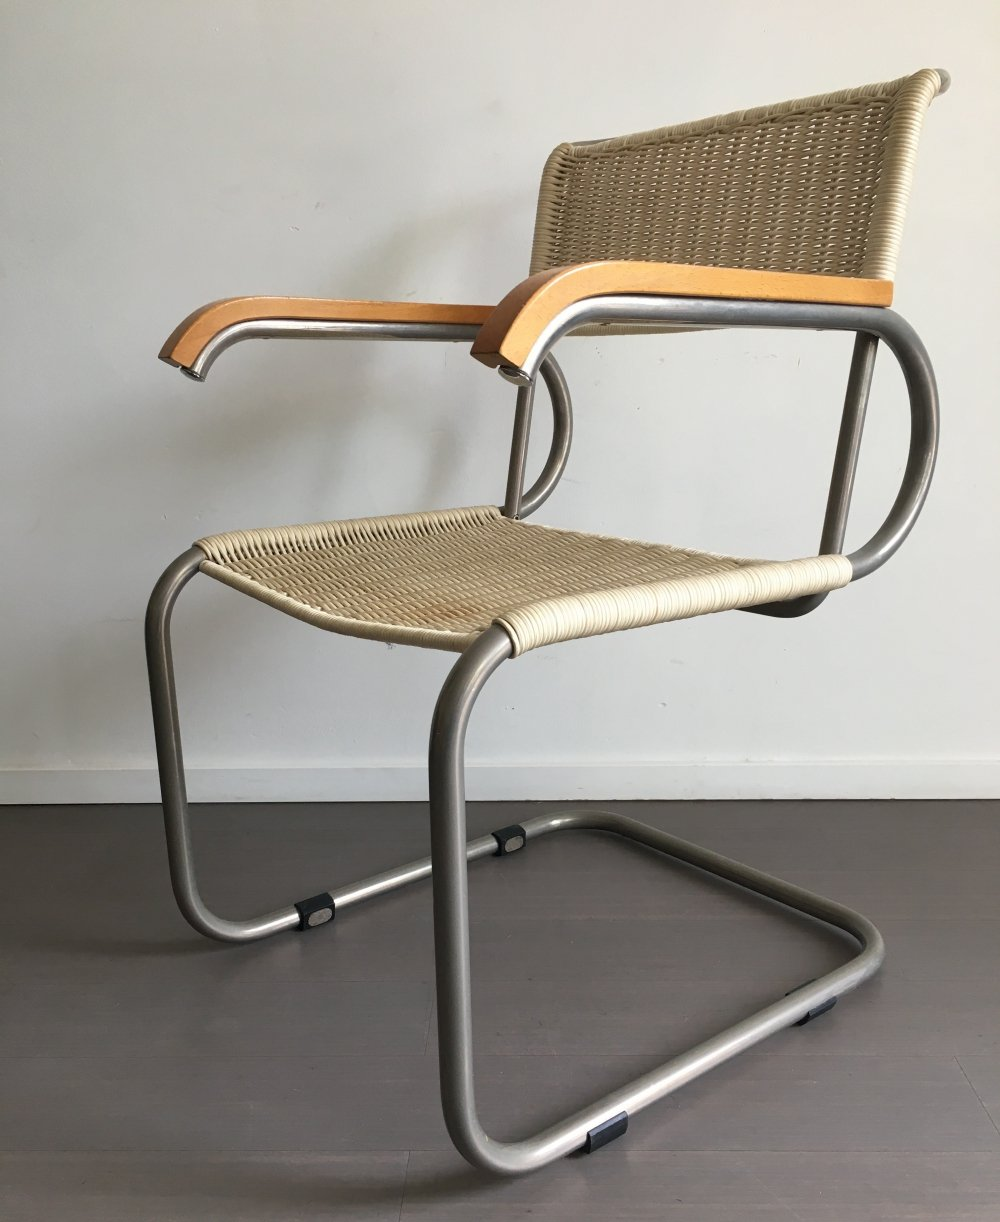 D40 arm chair by Marcel Breuer for Tecta, 1980s